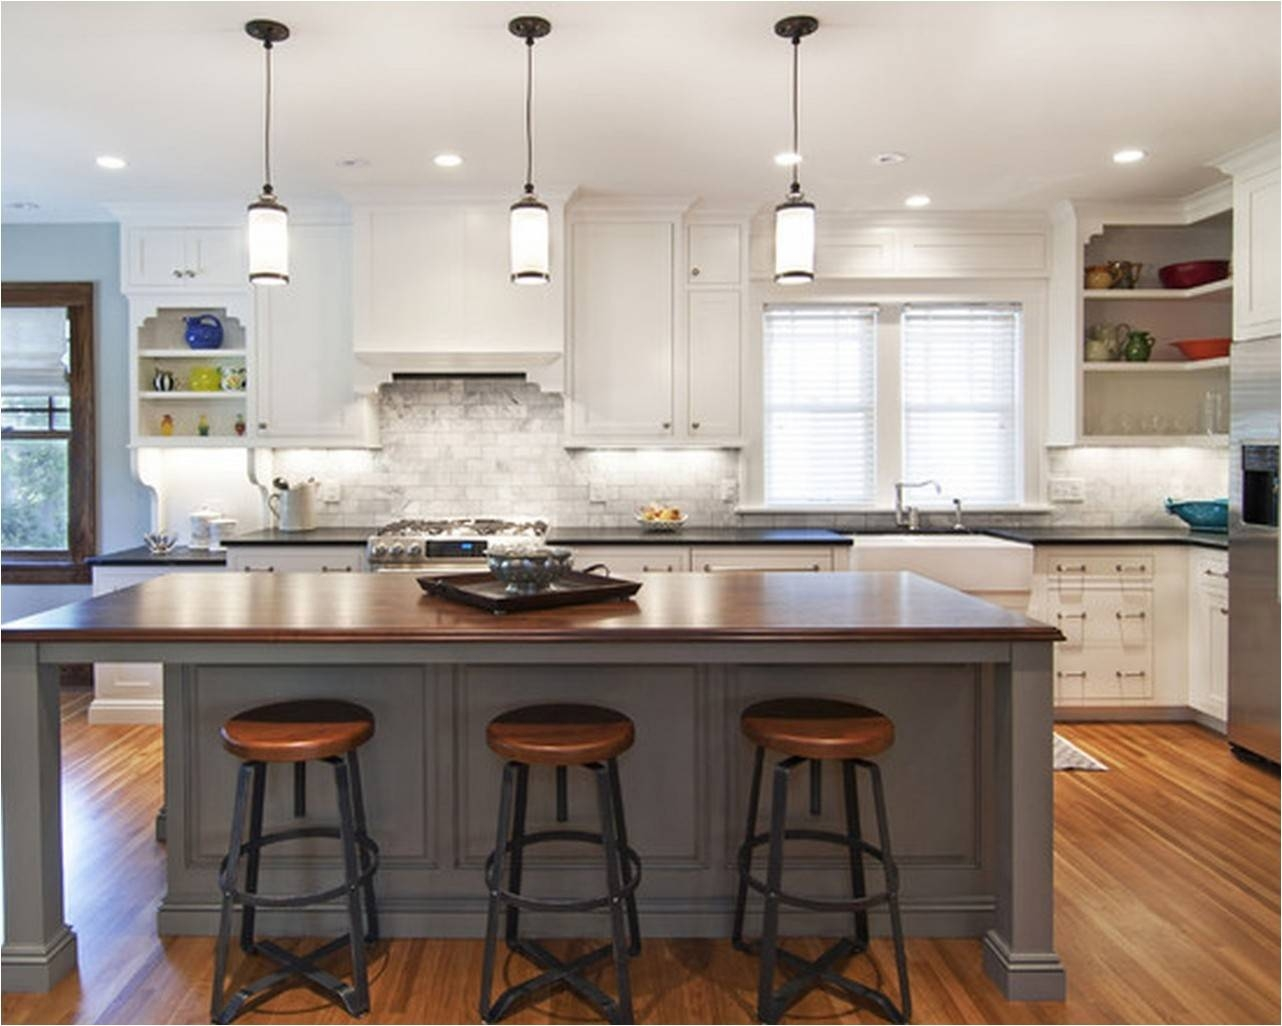 Cozy And Inviting Kitchen Island Lighting | Lighting Designs Ideas intended for Mini Lights Pendant For Kitchen Island (Image 2 of 15)